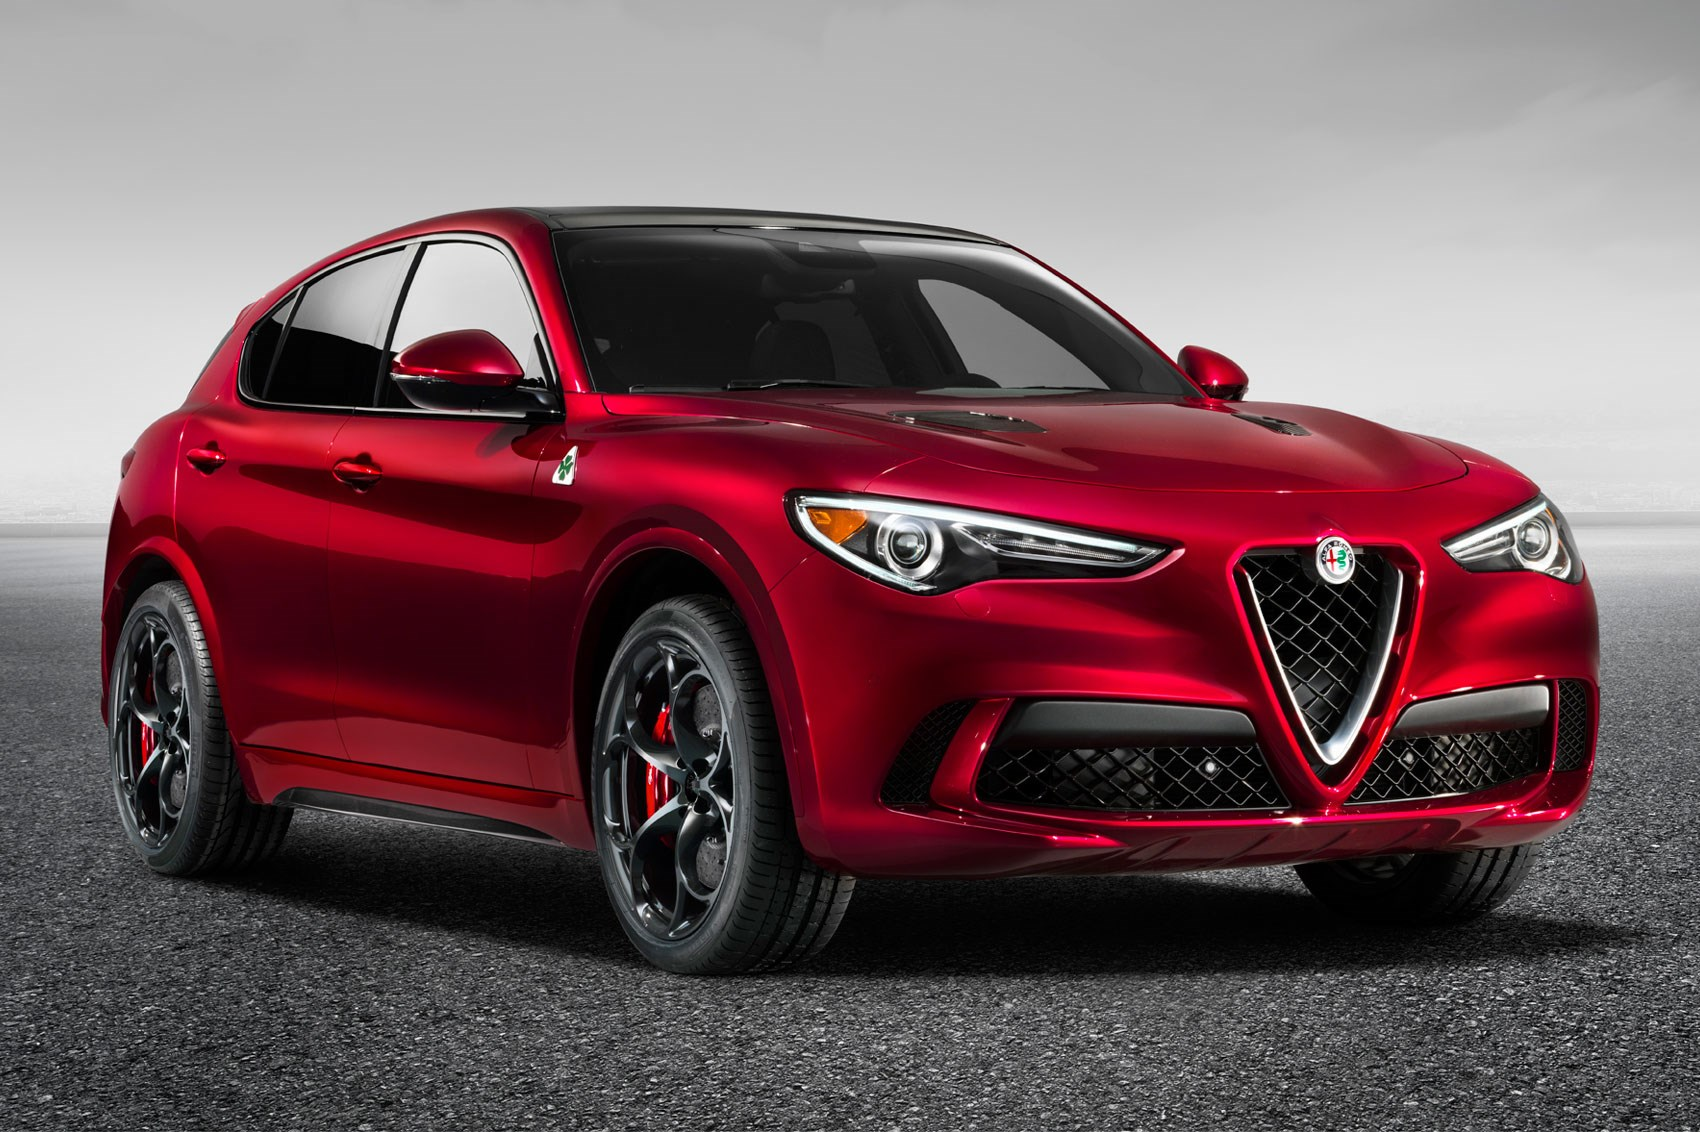 new alfa romeo stelvio quadrifoglio suv revealed latest news and pictures car magazine. Black Bedroom Furniture Sets. Home Design Ideas